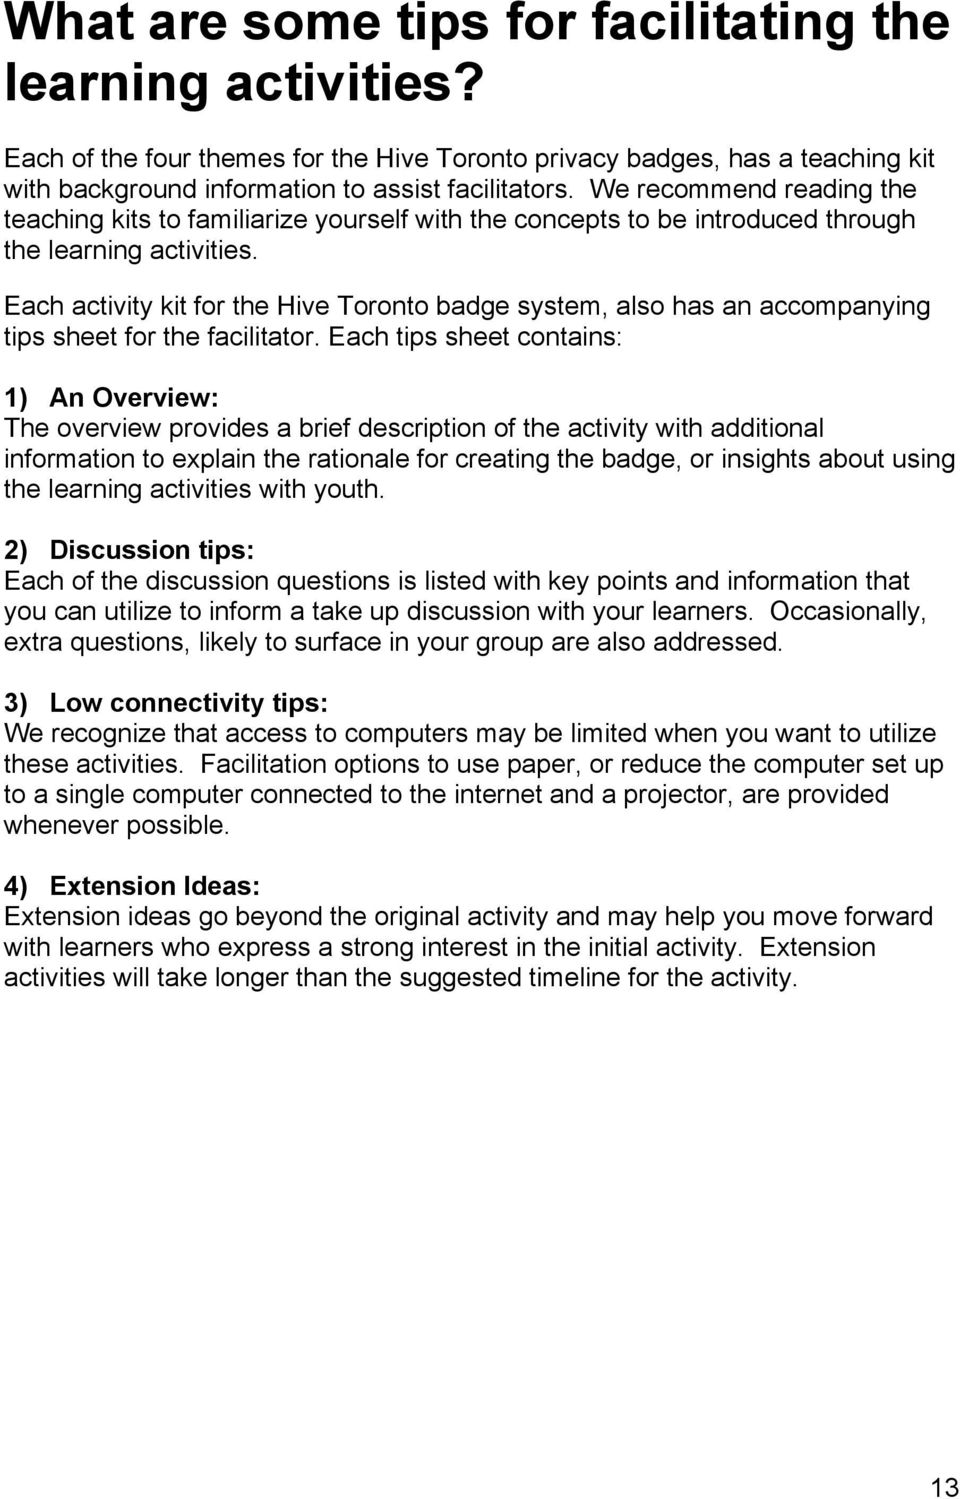 Each activity kit for the Hive Toronto badge system, also has an accompanying tips sheet for the facilitator.